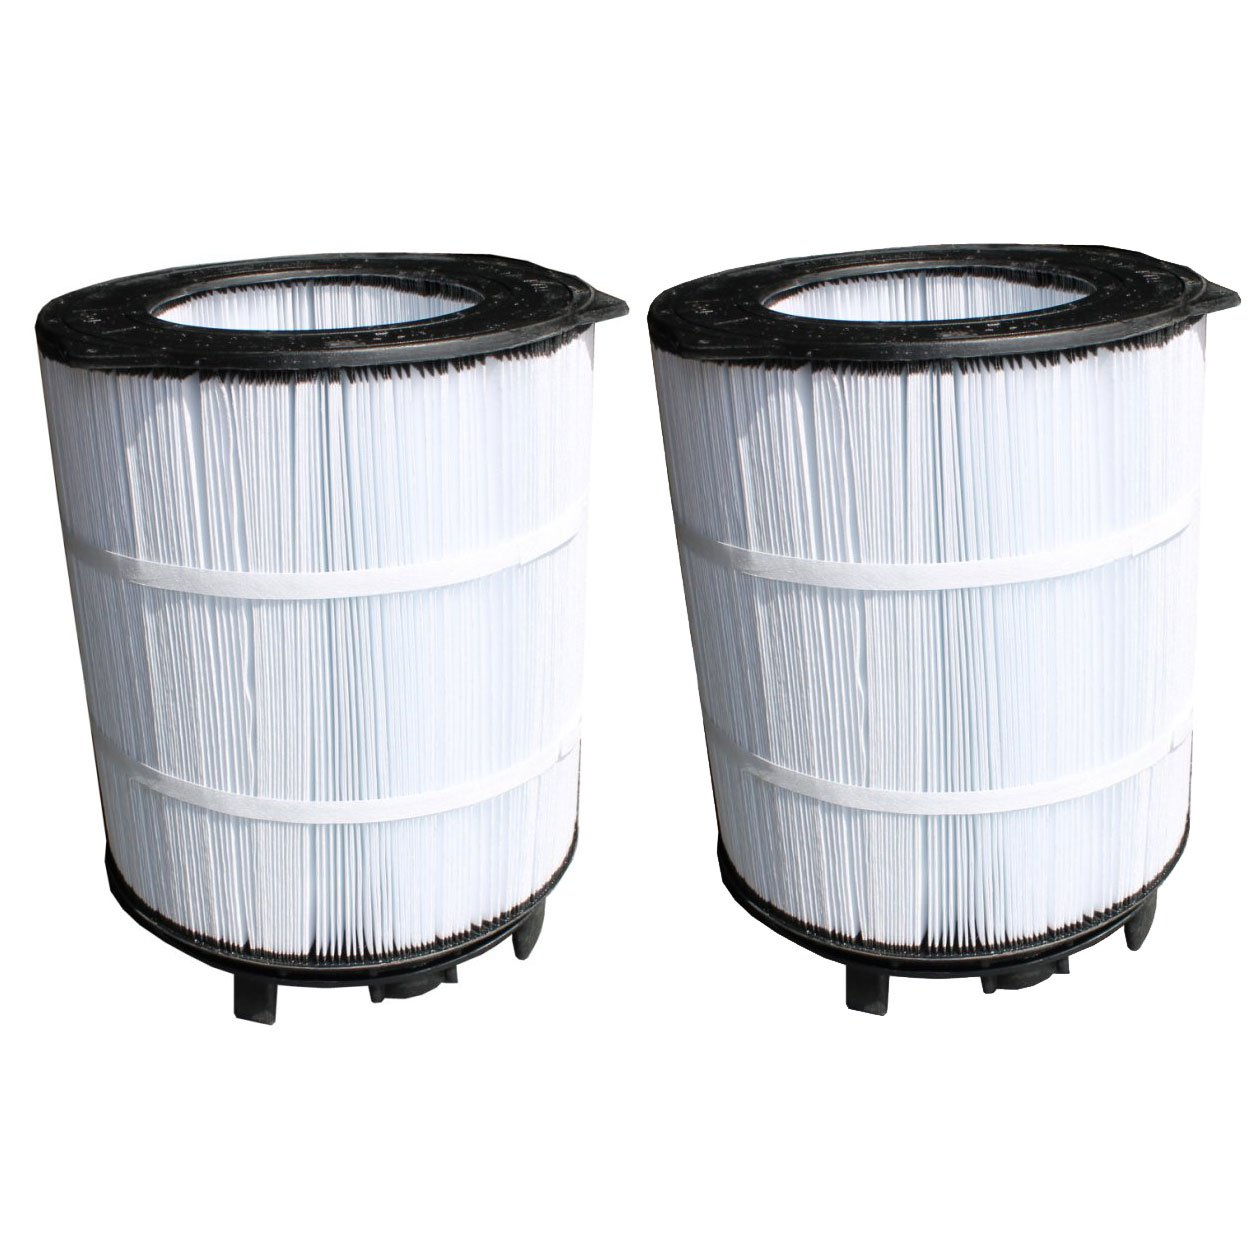 Sta-Rite 25022-0203S System 3 Large Outer Replacement Filter S8M150 (2 Pack)